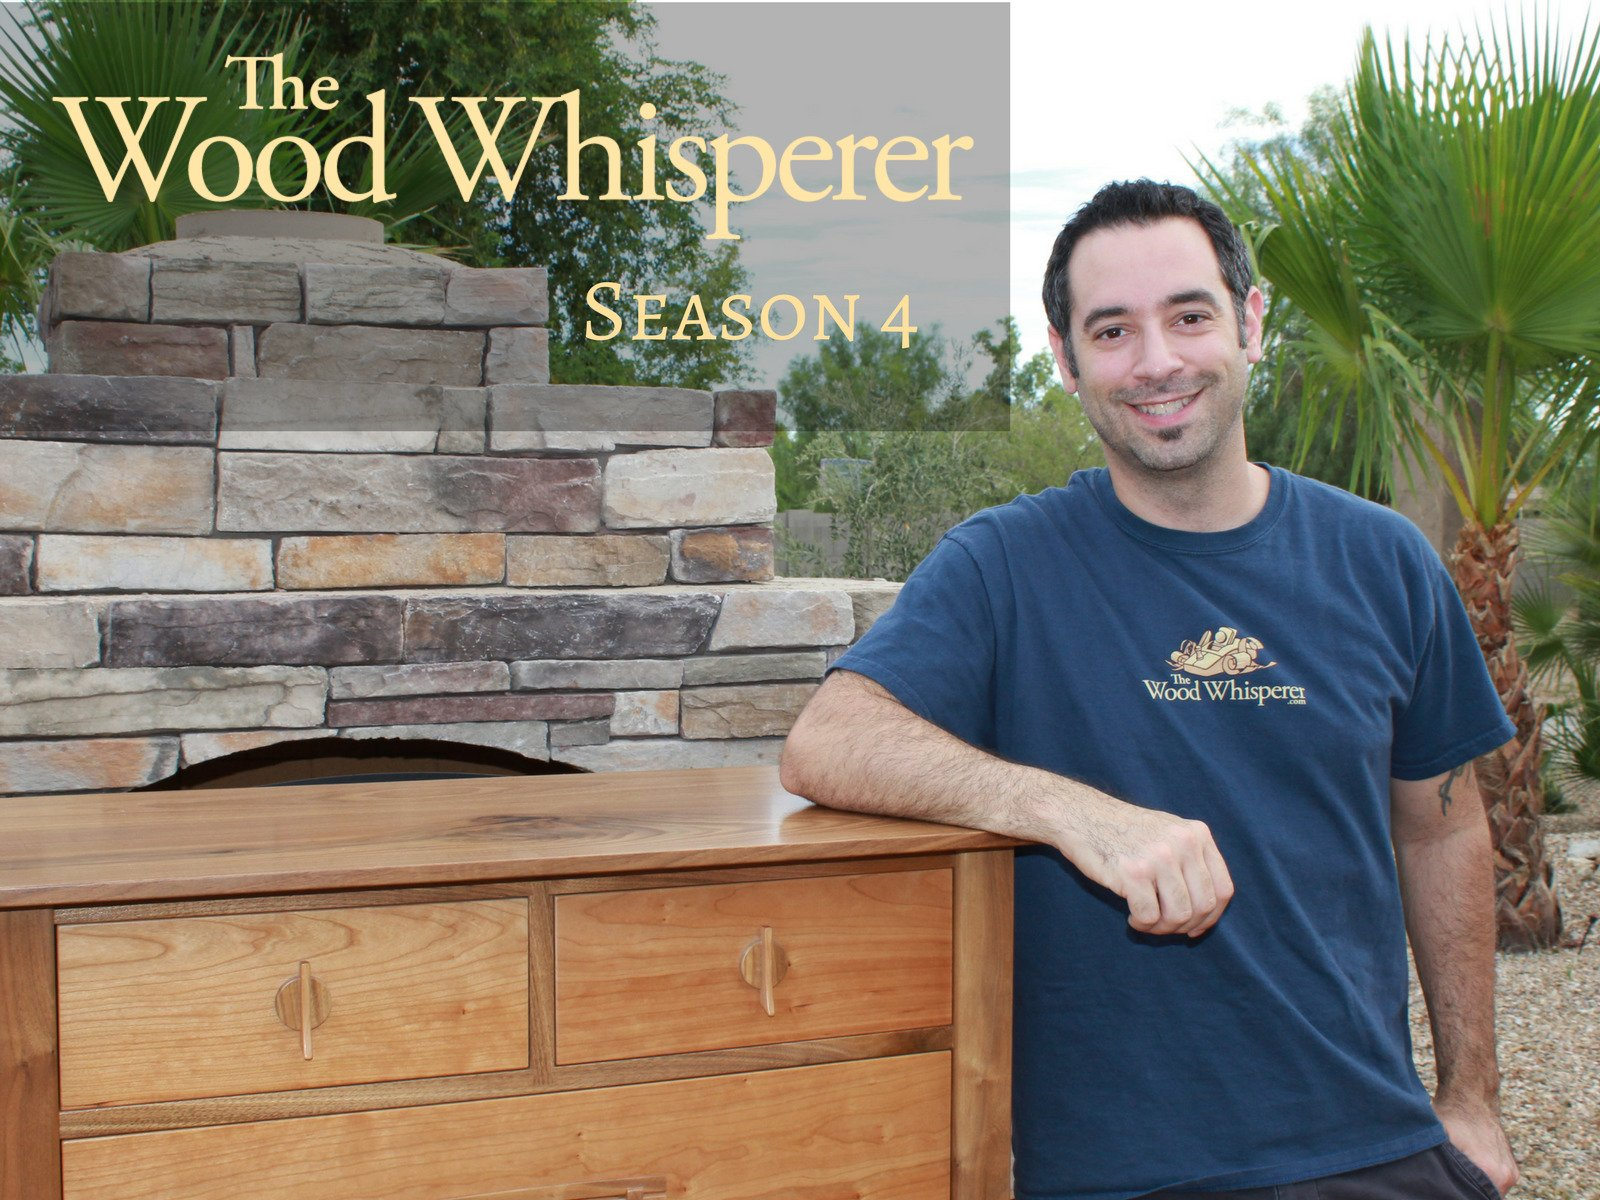 Miraculous Watch The Wood Whisperer Prime Video Alphanode Cool Chair Designs And Ideas Alphanodeonline